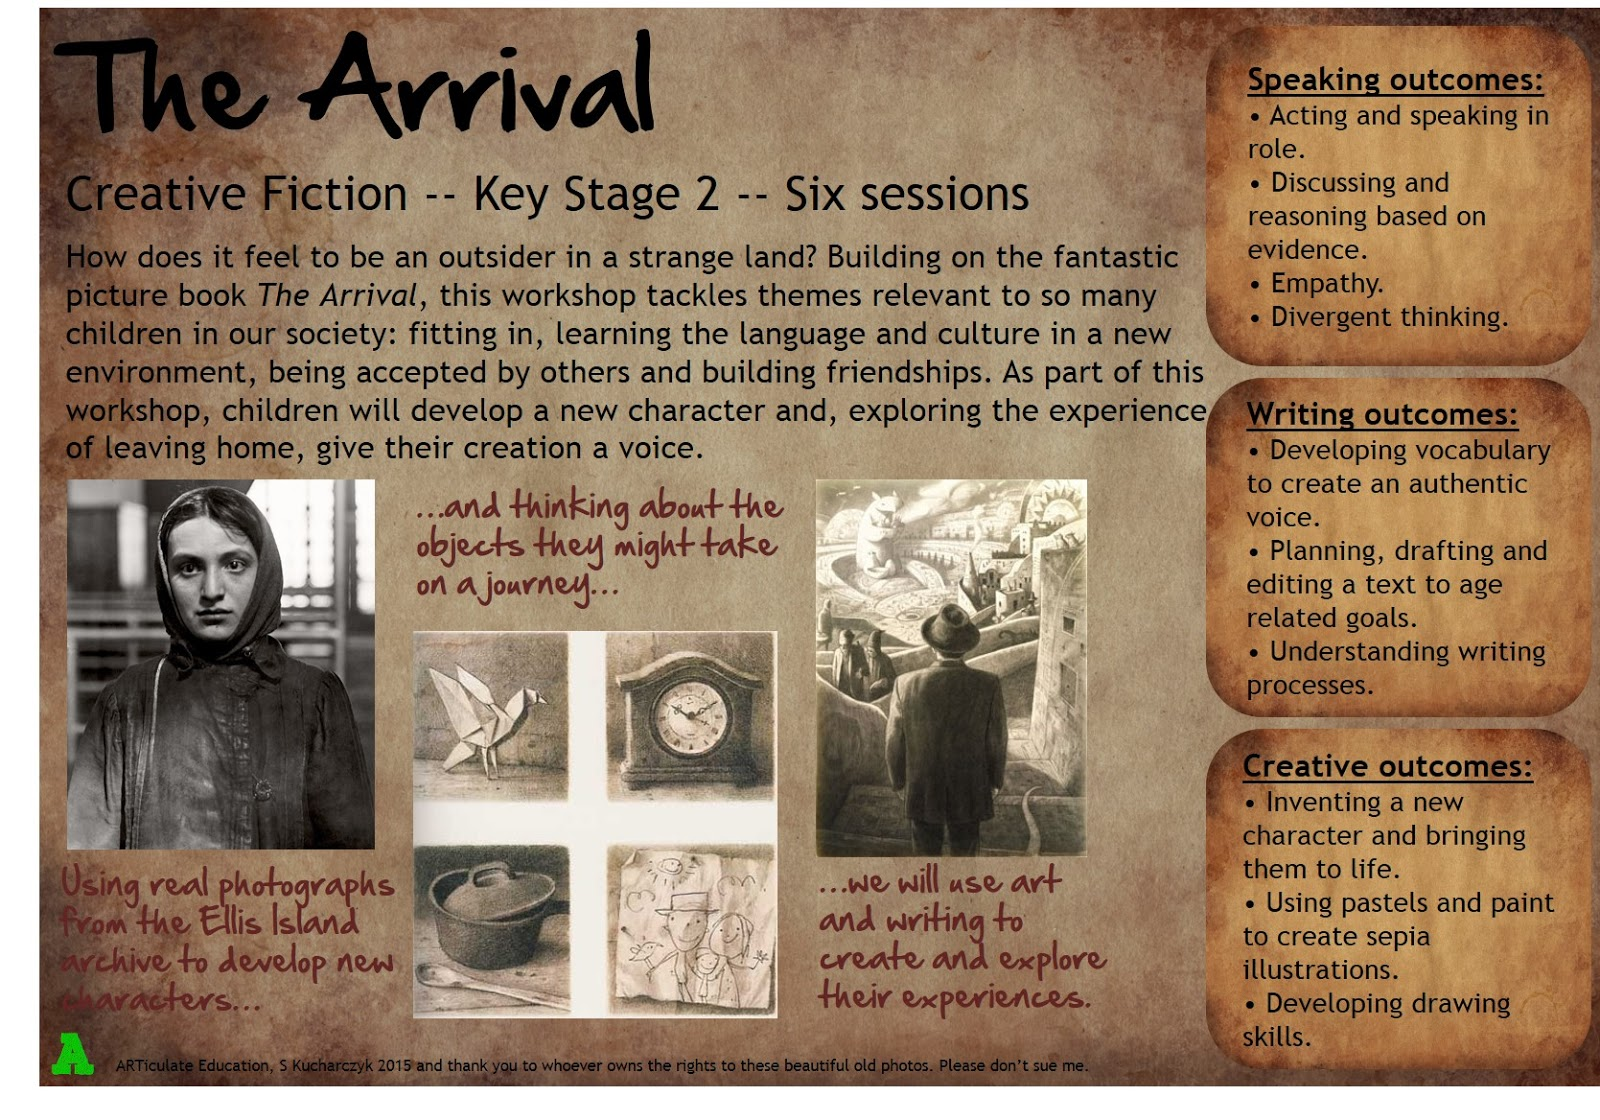 creative story writing ideas ks2 Myths and legends (ks1 & ks2 resources) writing frames, story planning templates and creative writing prompts to explore myths and legends.